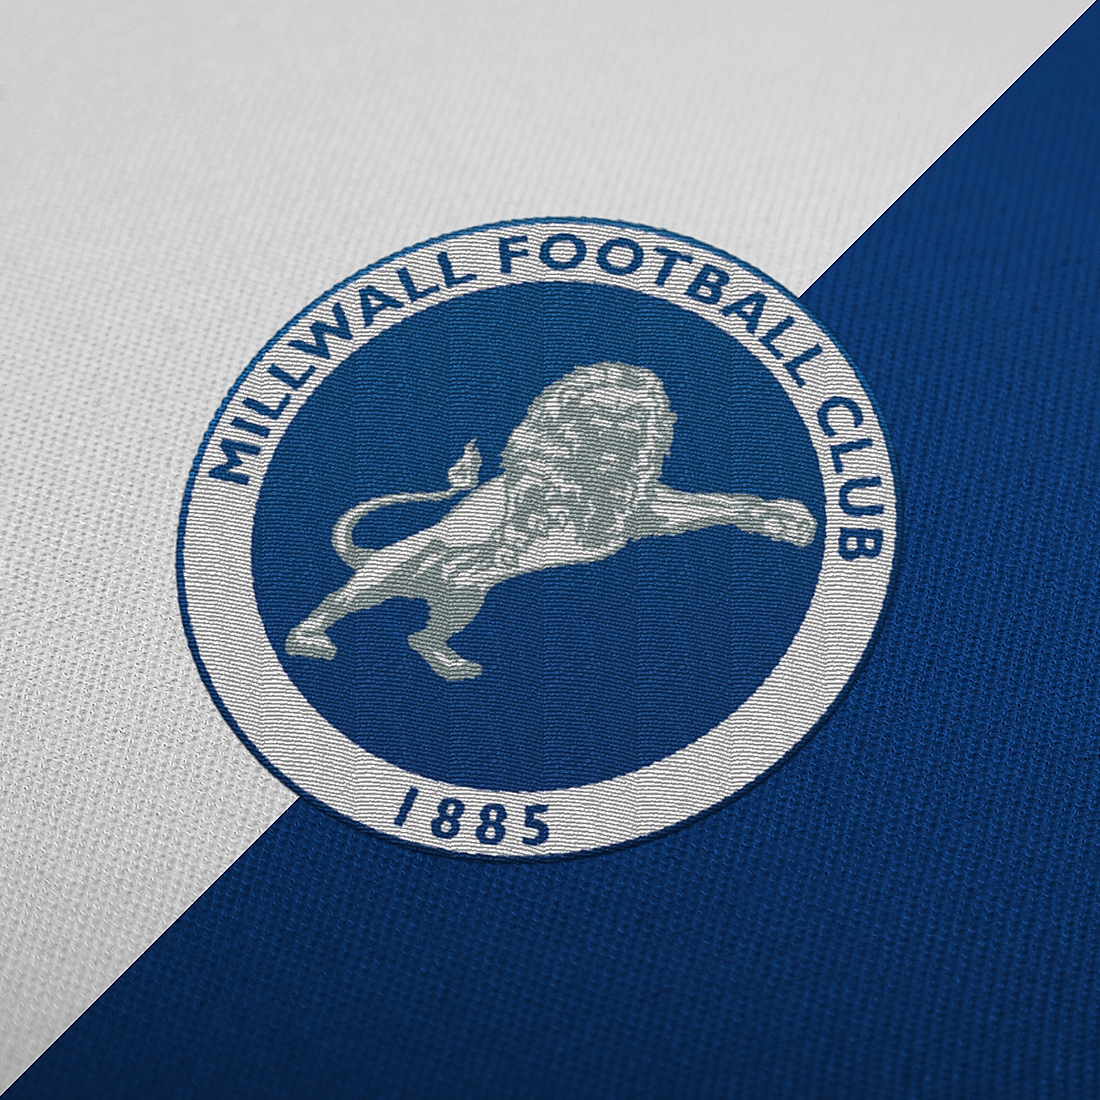 https://ponad.pl/wp-content/uploads/2016/04/millwall-embroidered-logo.jpg